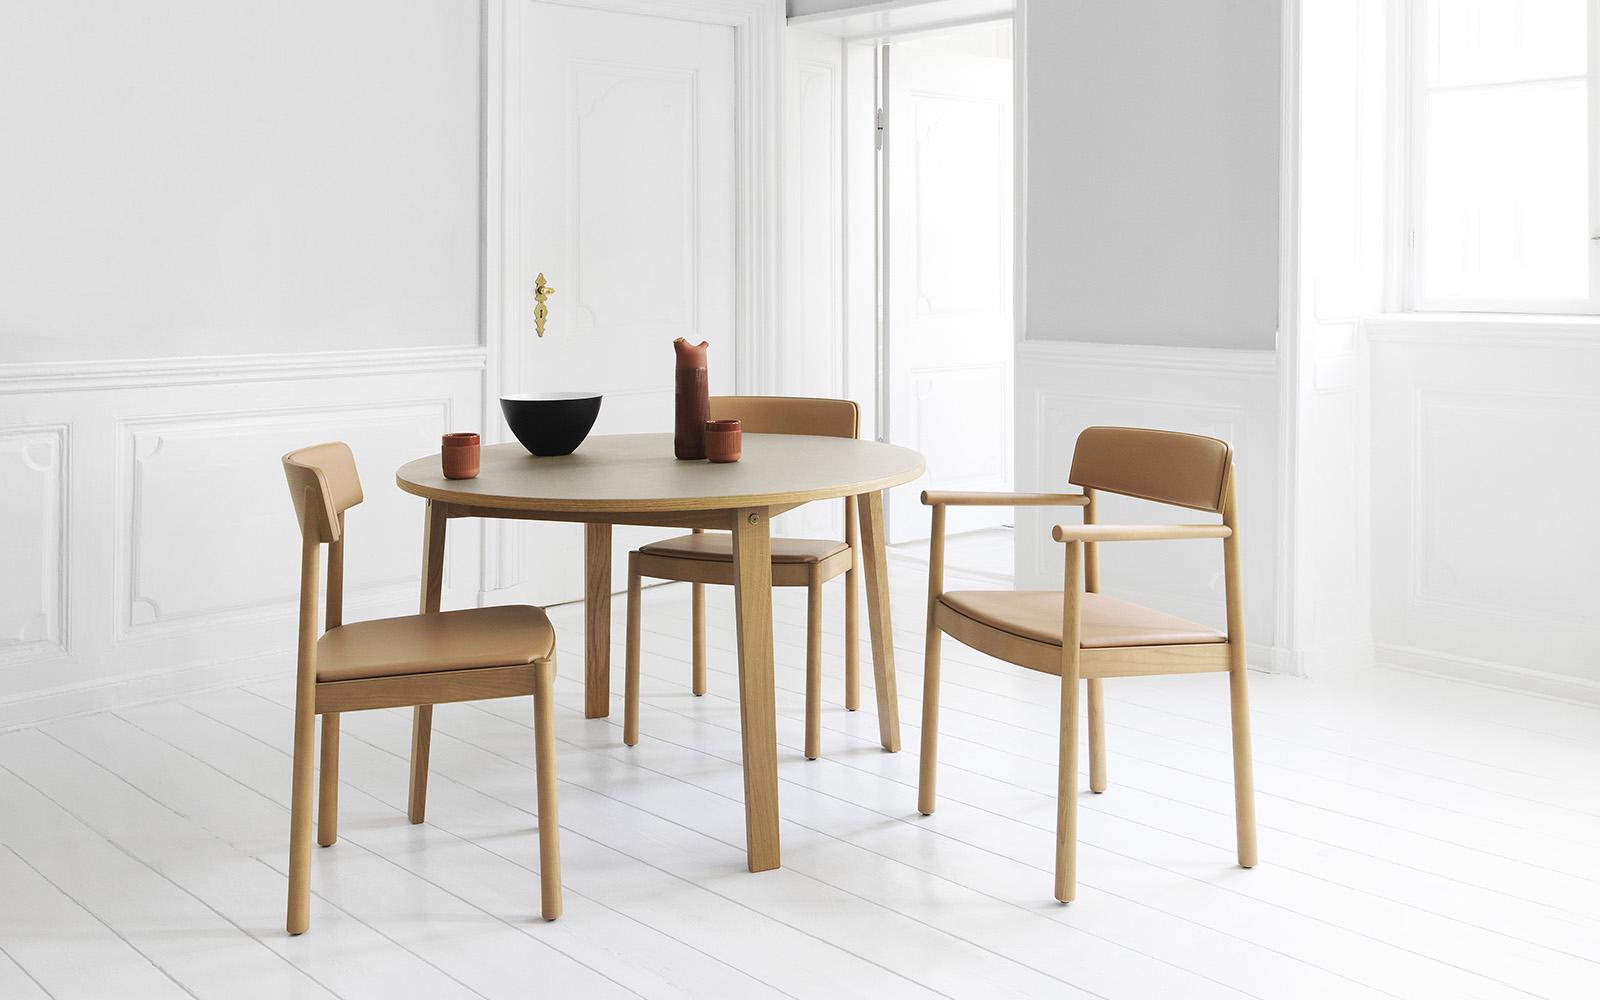 Timb Armchair Tan with Upholstery - Normann Copenhagen